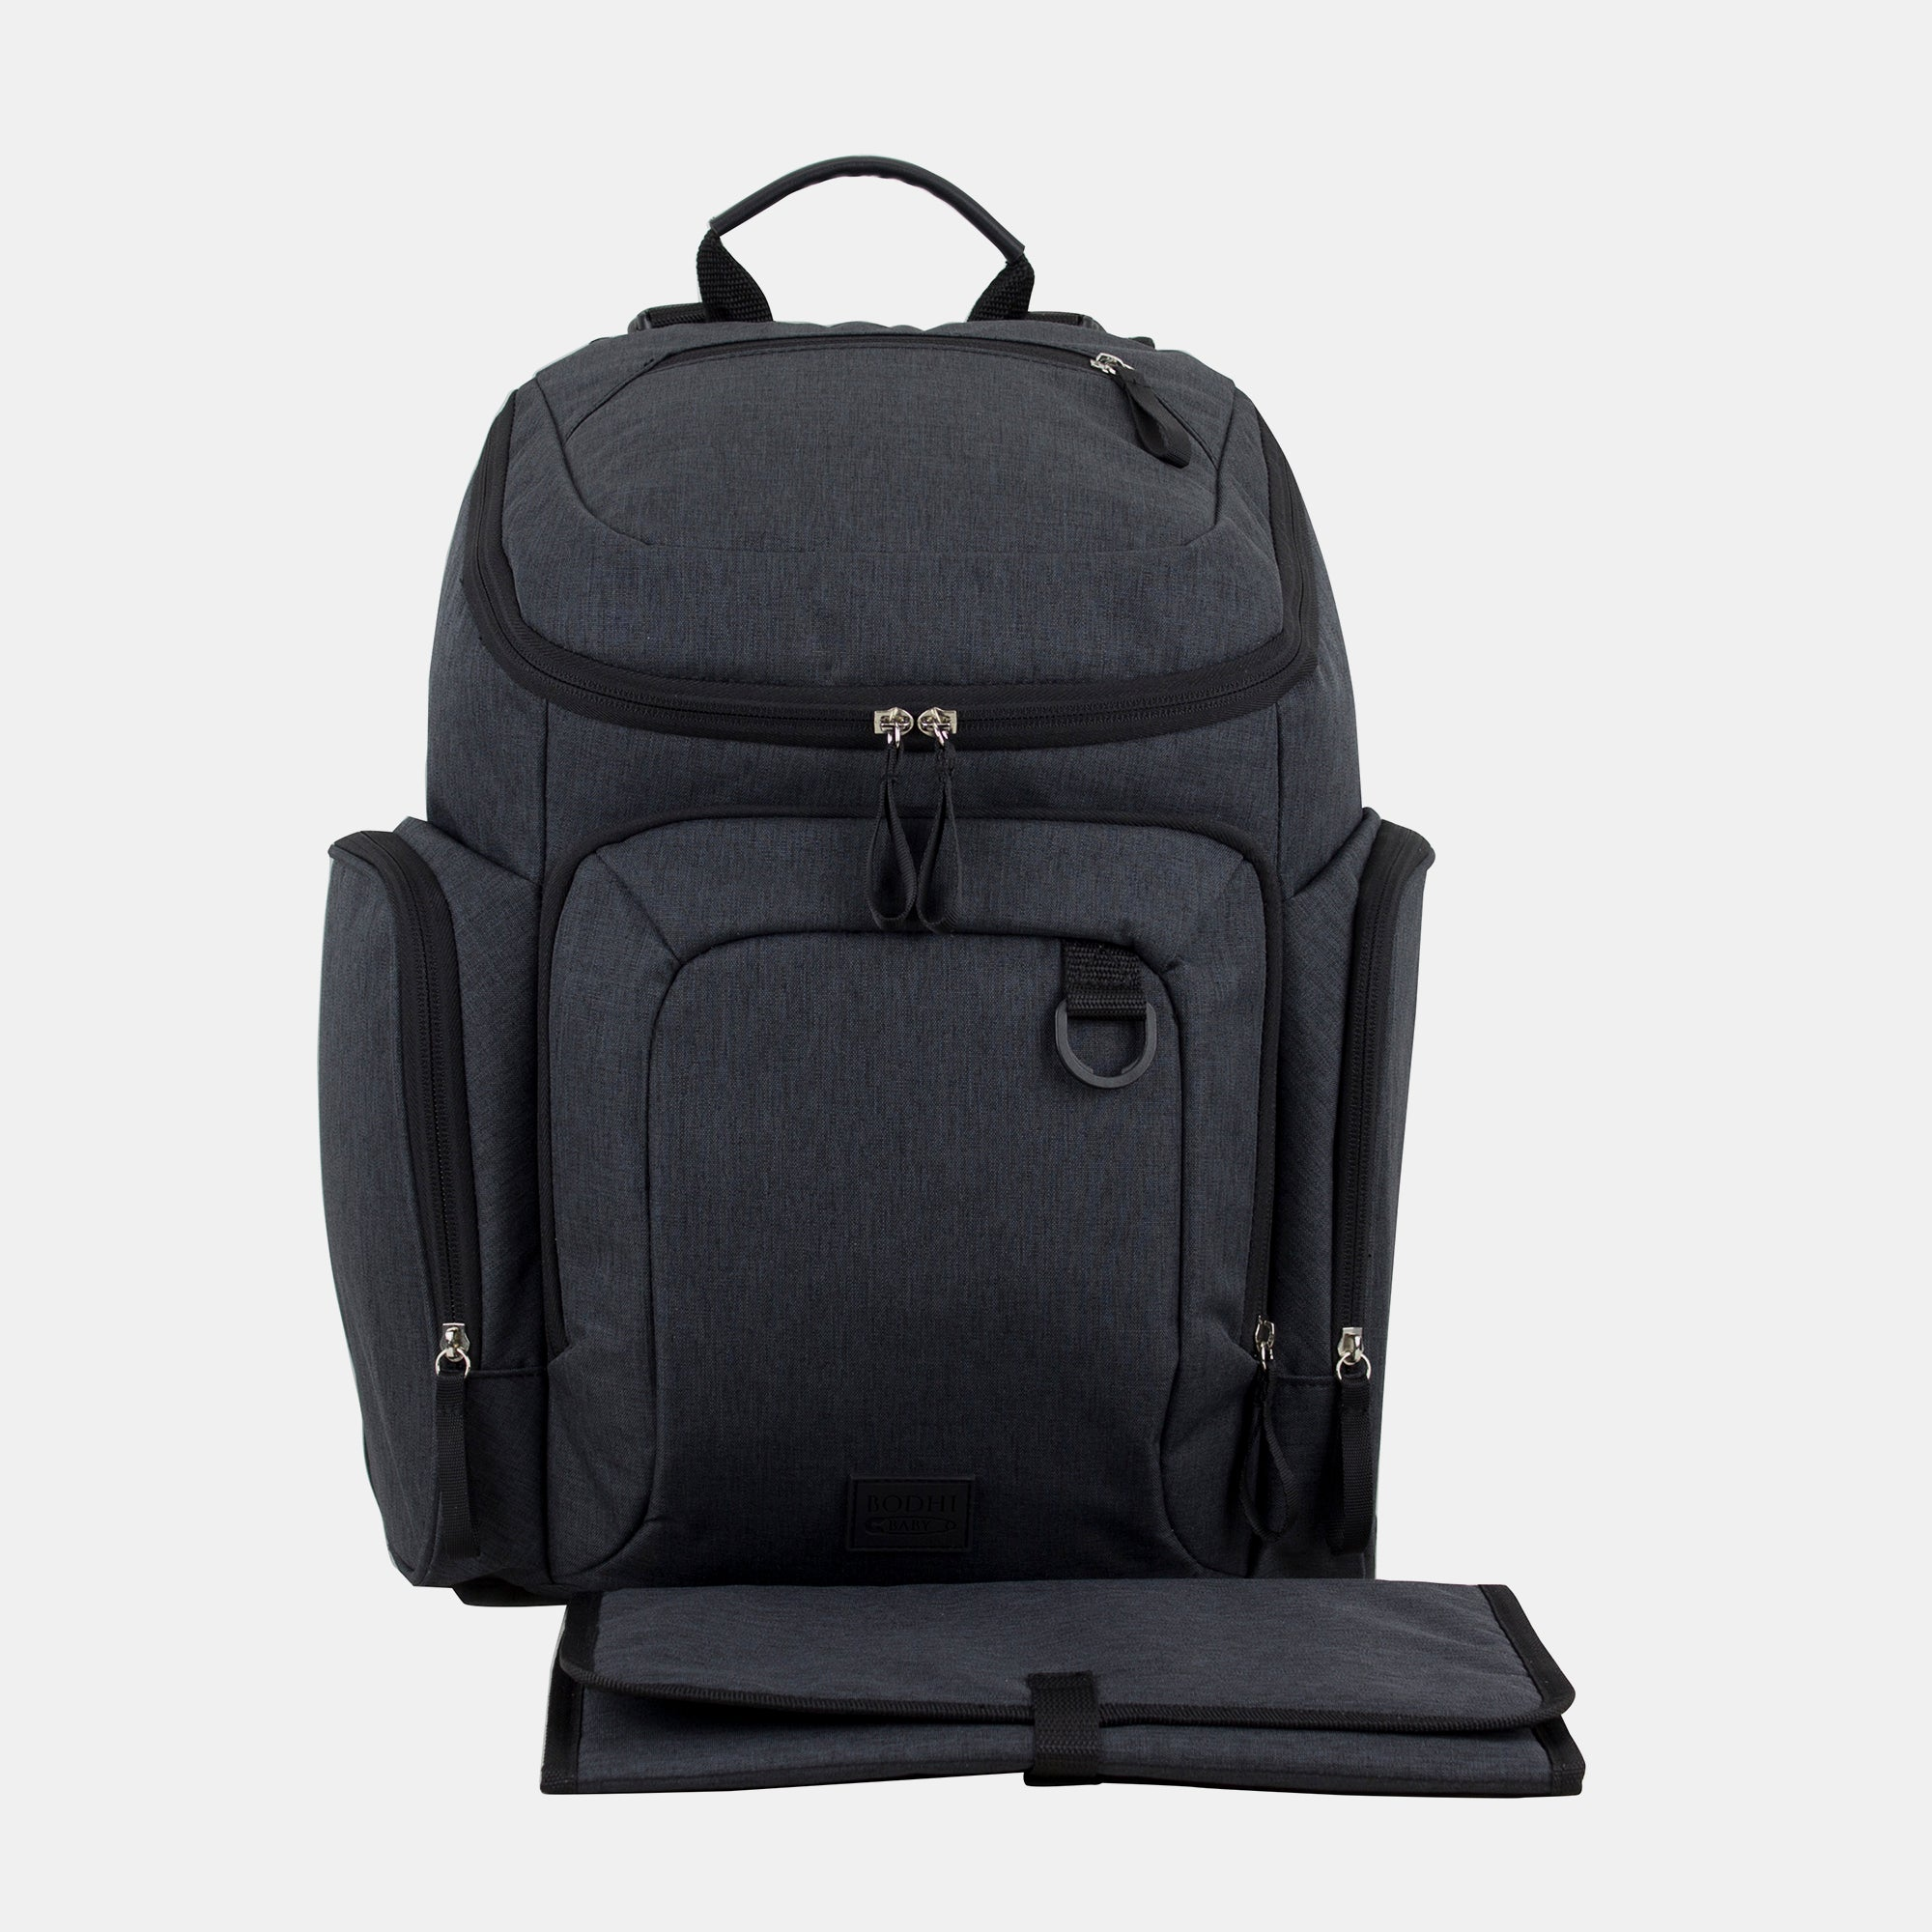 The Bodhi Baby Tech Top Loader Diaper Backpack